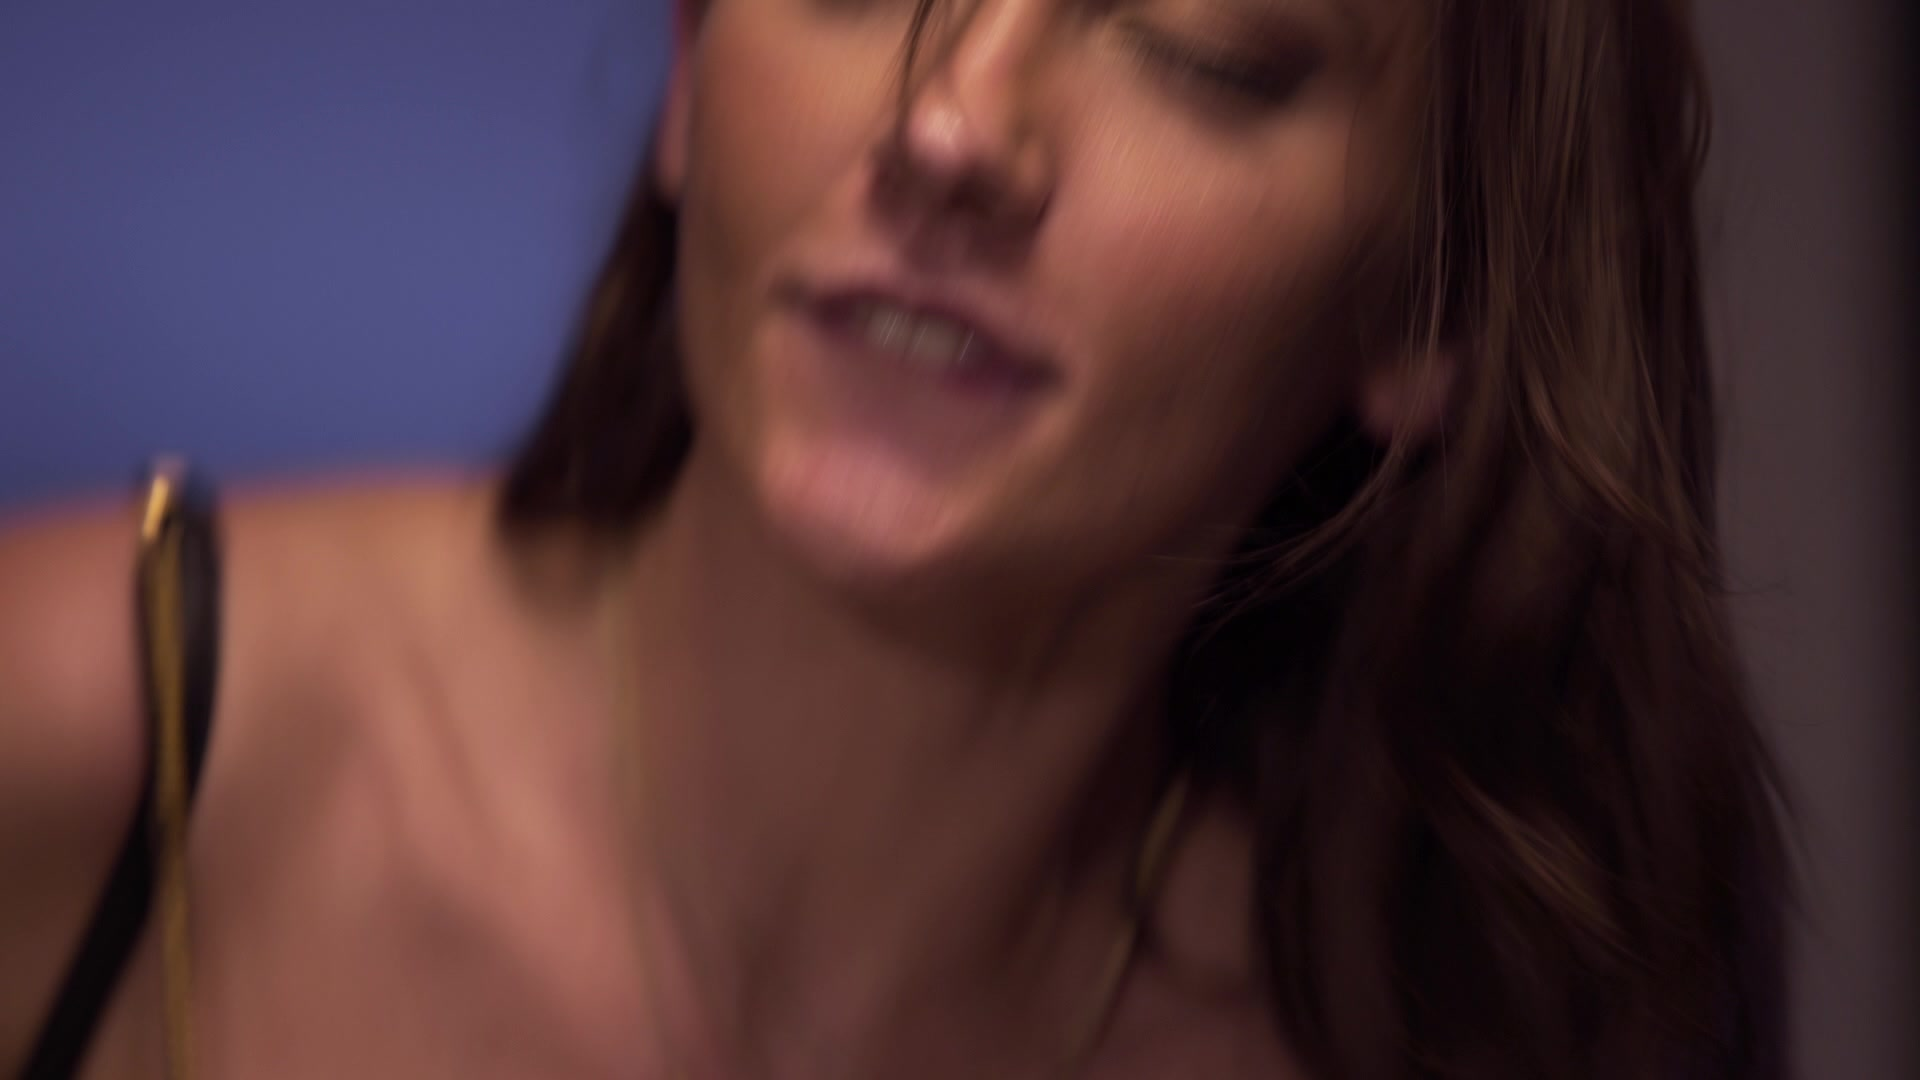 Scene with Julie Skyhigh - image 19 out of 20